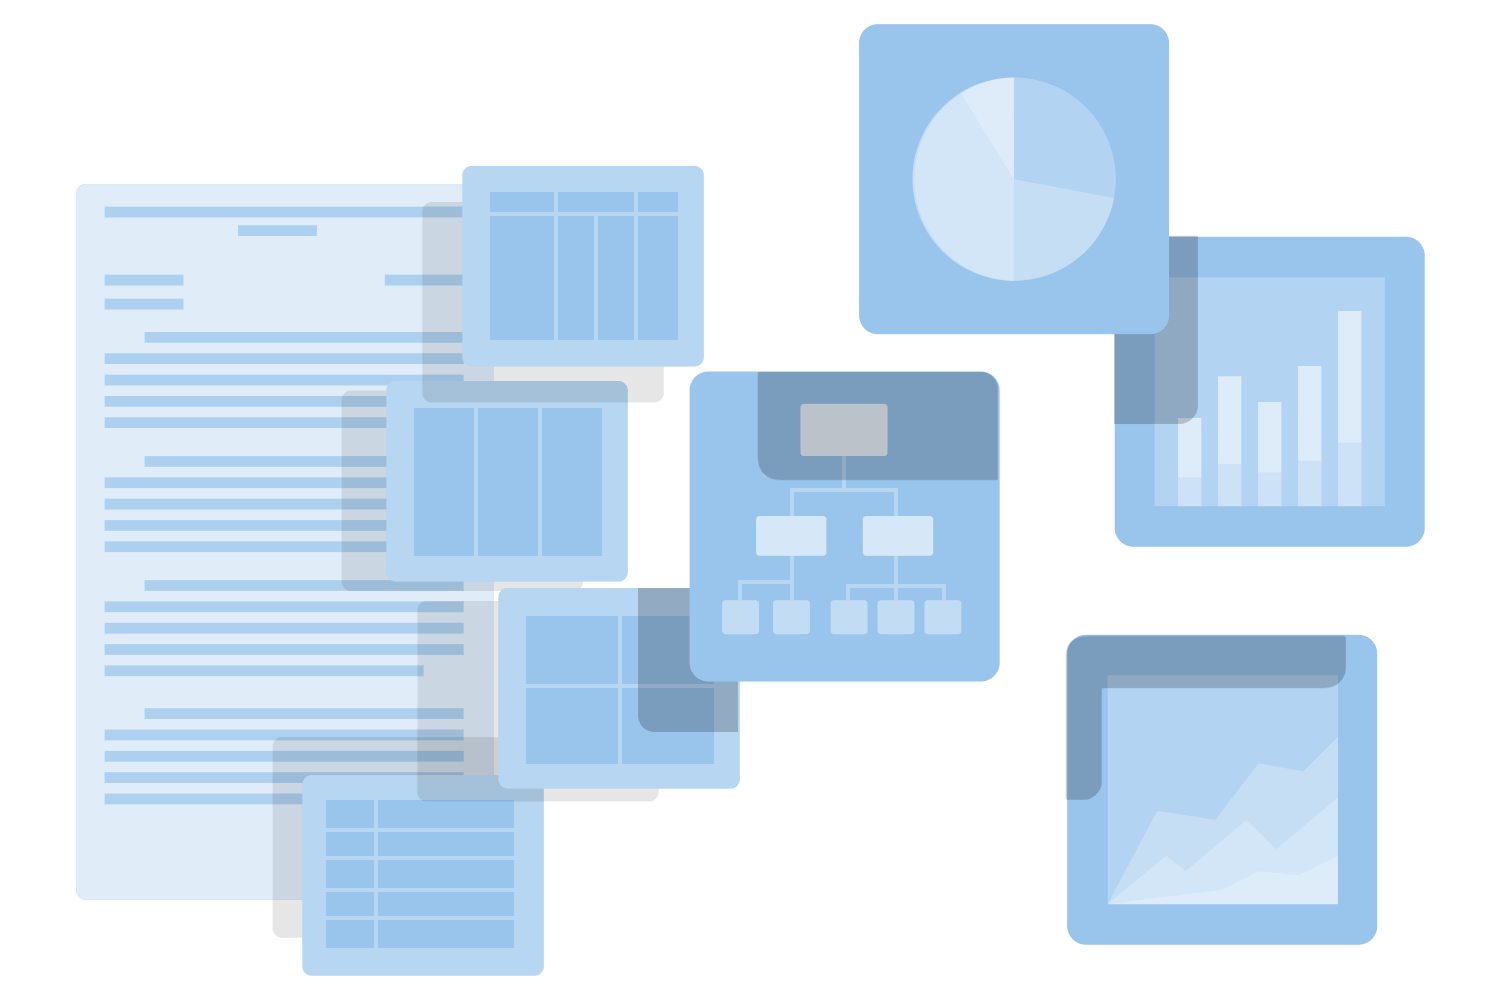 your data in easy to read graphs and forms